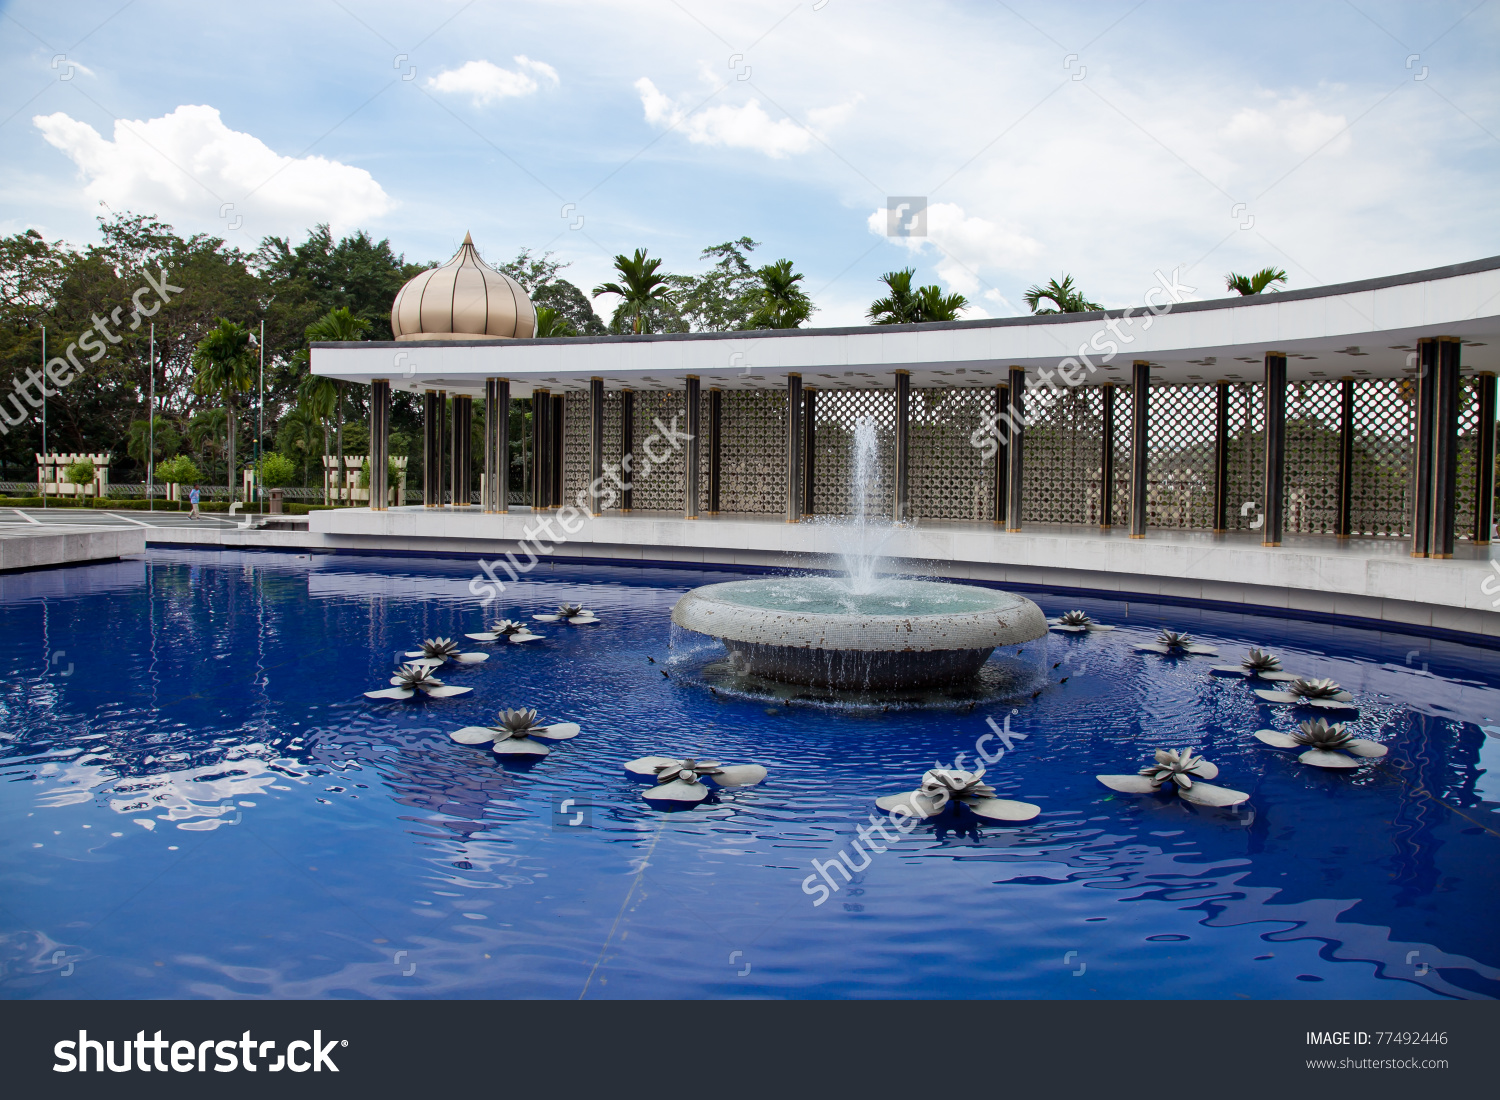 A Long Rectangular Reflecting Pool With Fountain Stock Photo.